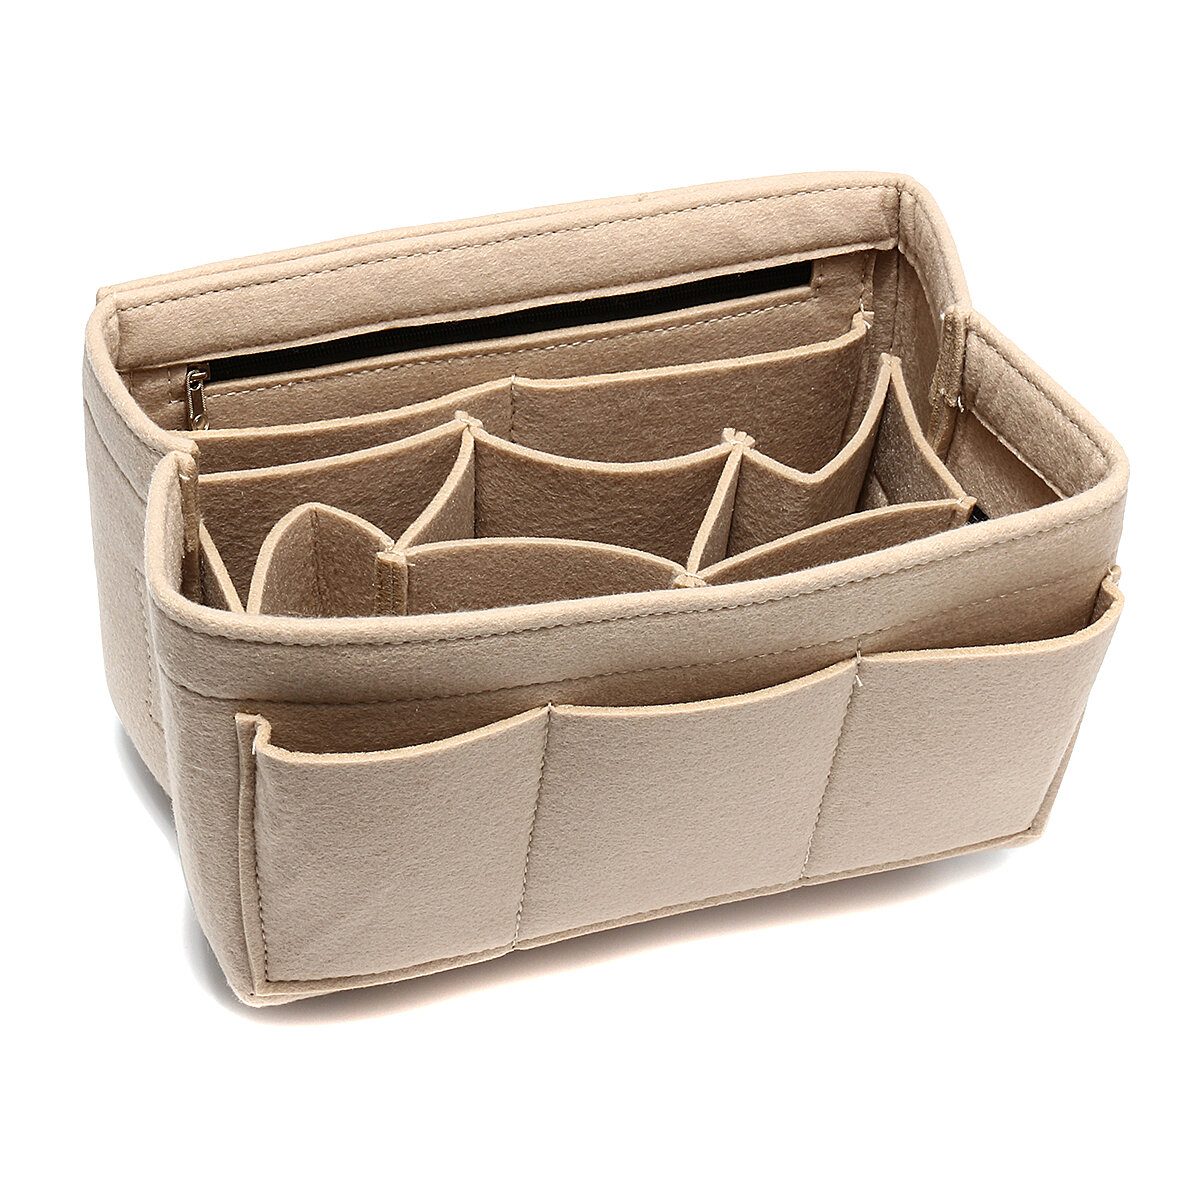 Felt Insert Bag Multi Pockets Handbag Purse Organizer (SKU909747) photo